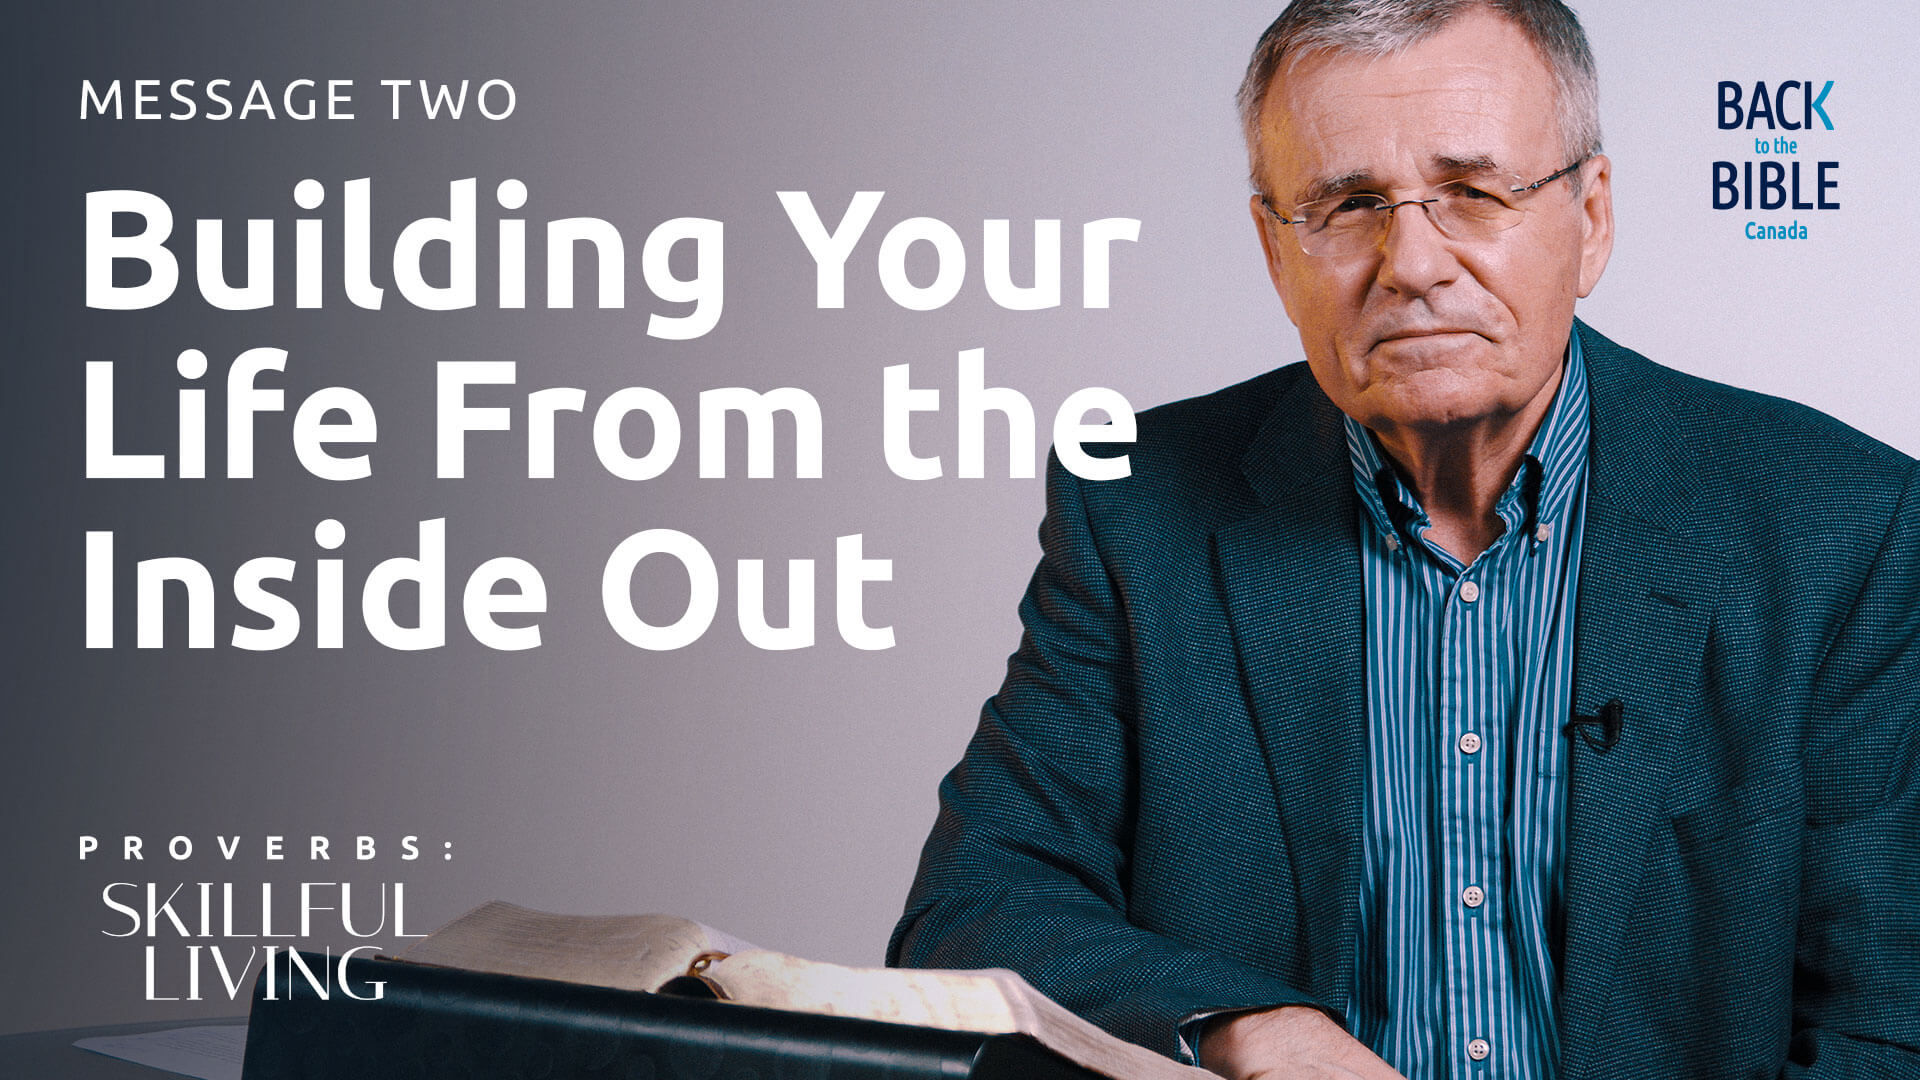 Building Your Life From the Inside Out | Back to the Bible Canada with Dr. John Neufeld